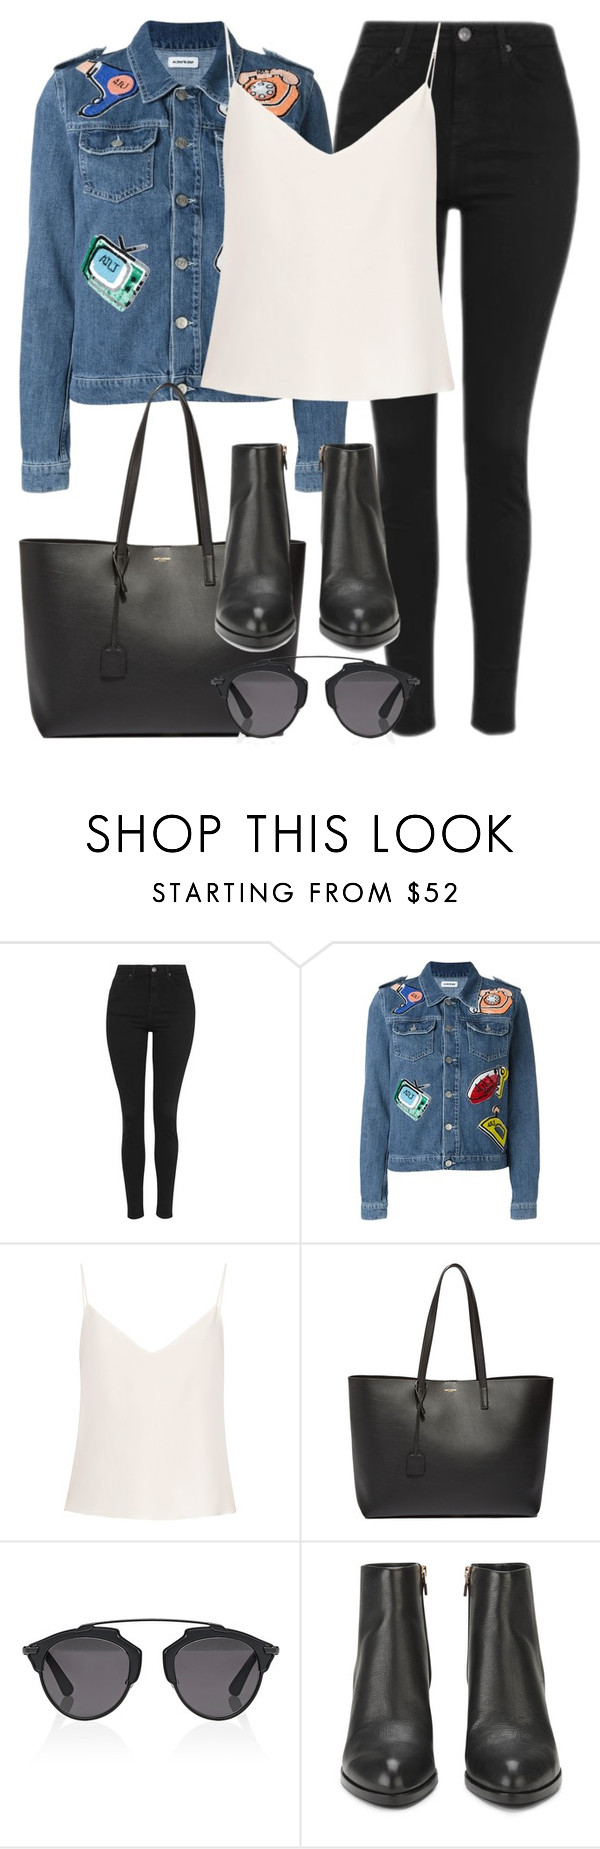 """""""Untitled #2754"""" by elenaday ❤ liked on Polyvore featuring Topshop, Au Jour Le Jour, Raey, Yves Saint Laurent, Christian Dior and Alexander Wang"""